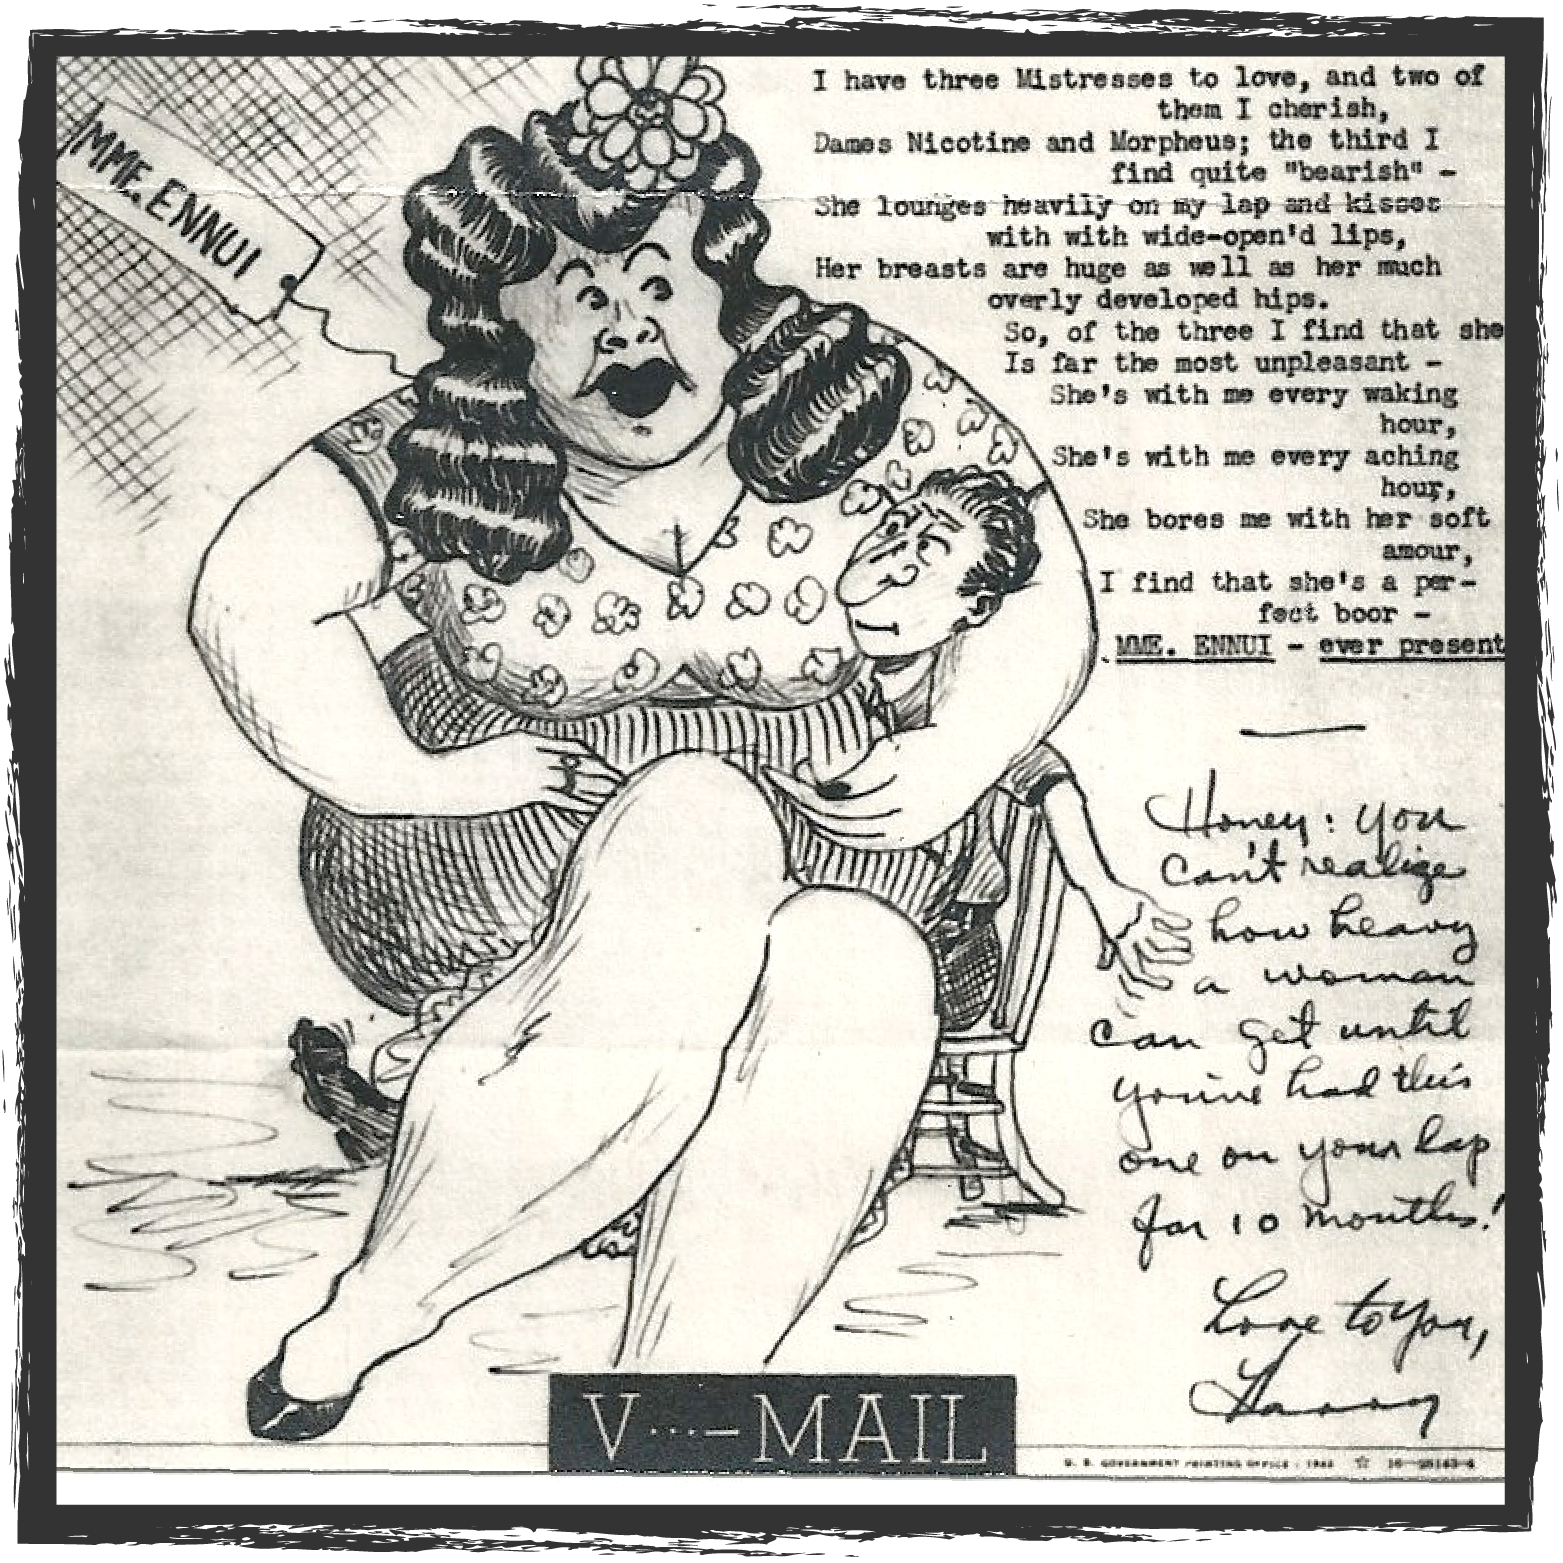 V-Mail Cartoons - Harry Chrisman was stationed in the Pacific Theater for the four years of WWII. These letters and cartoons, sent home to Harry's family, provide an incredible window into his daily life.